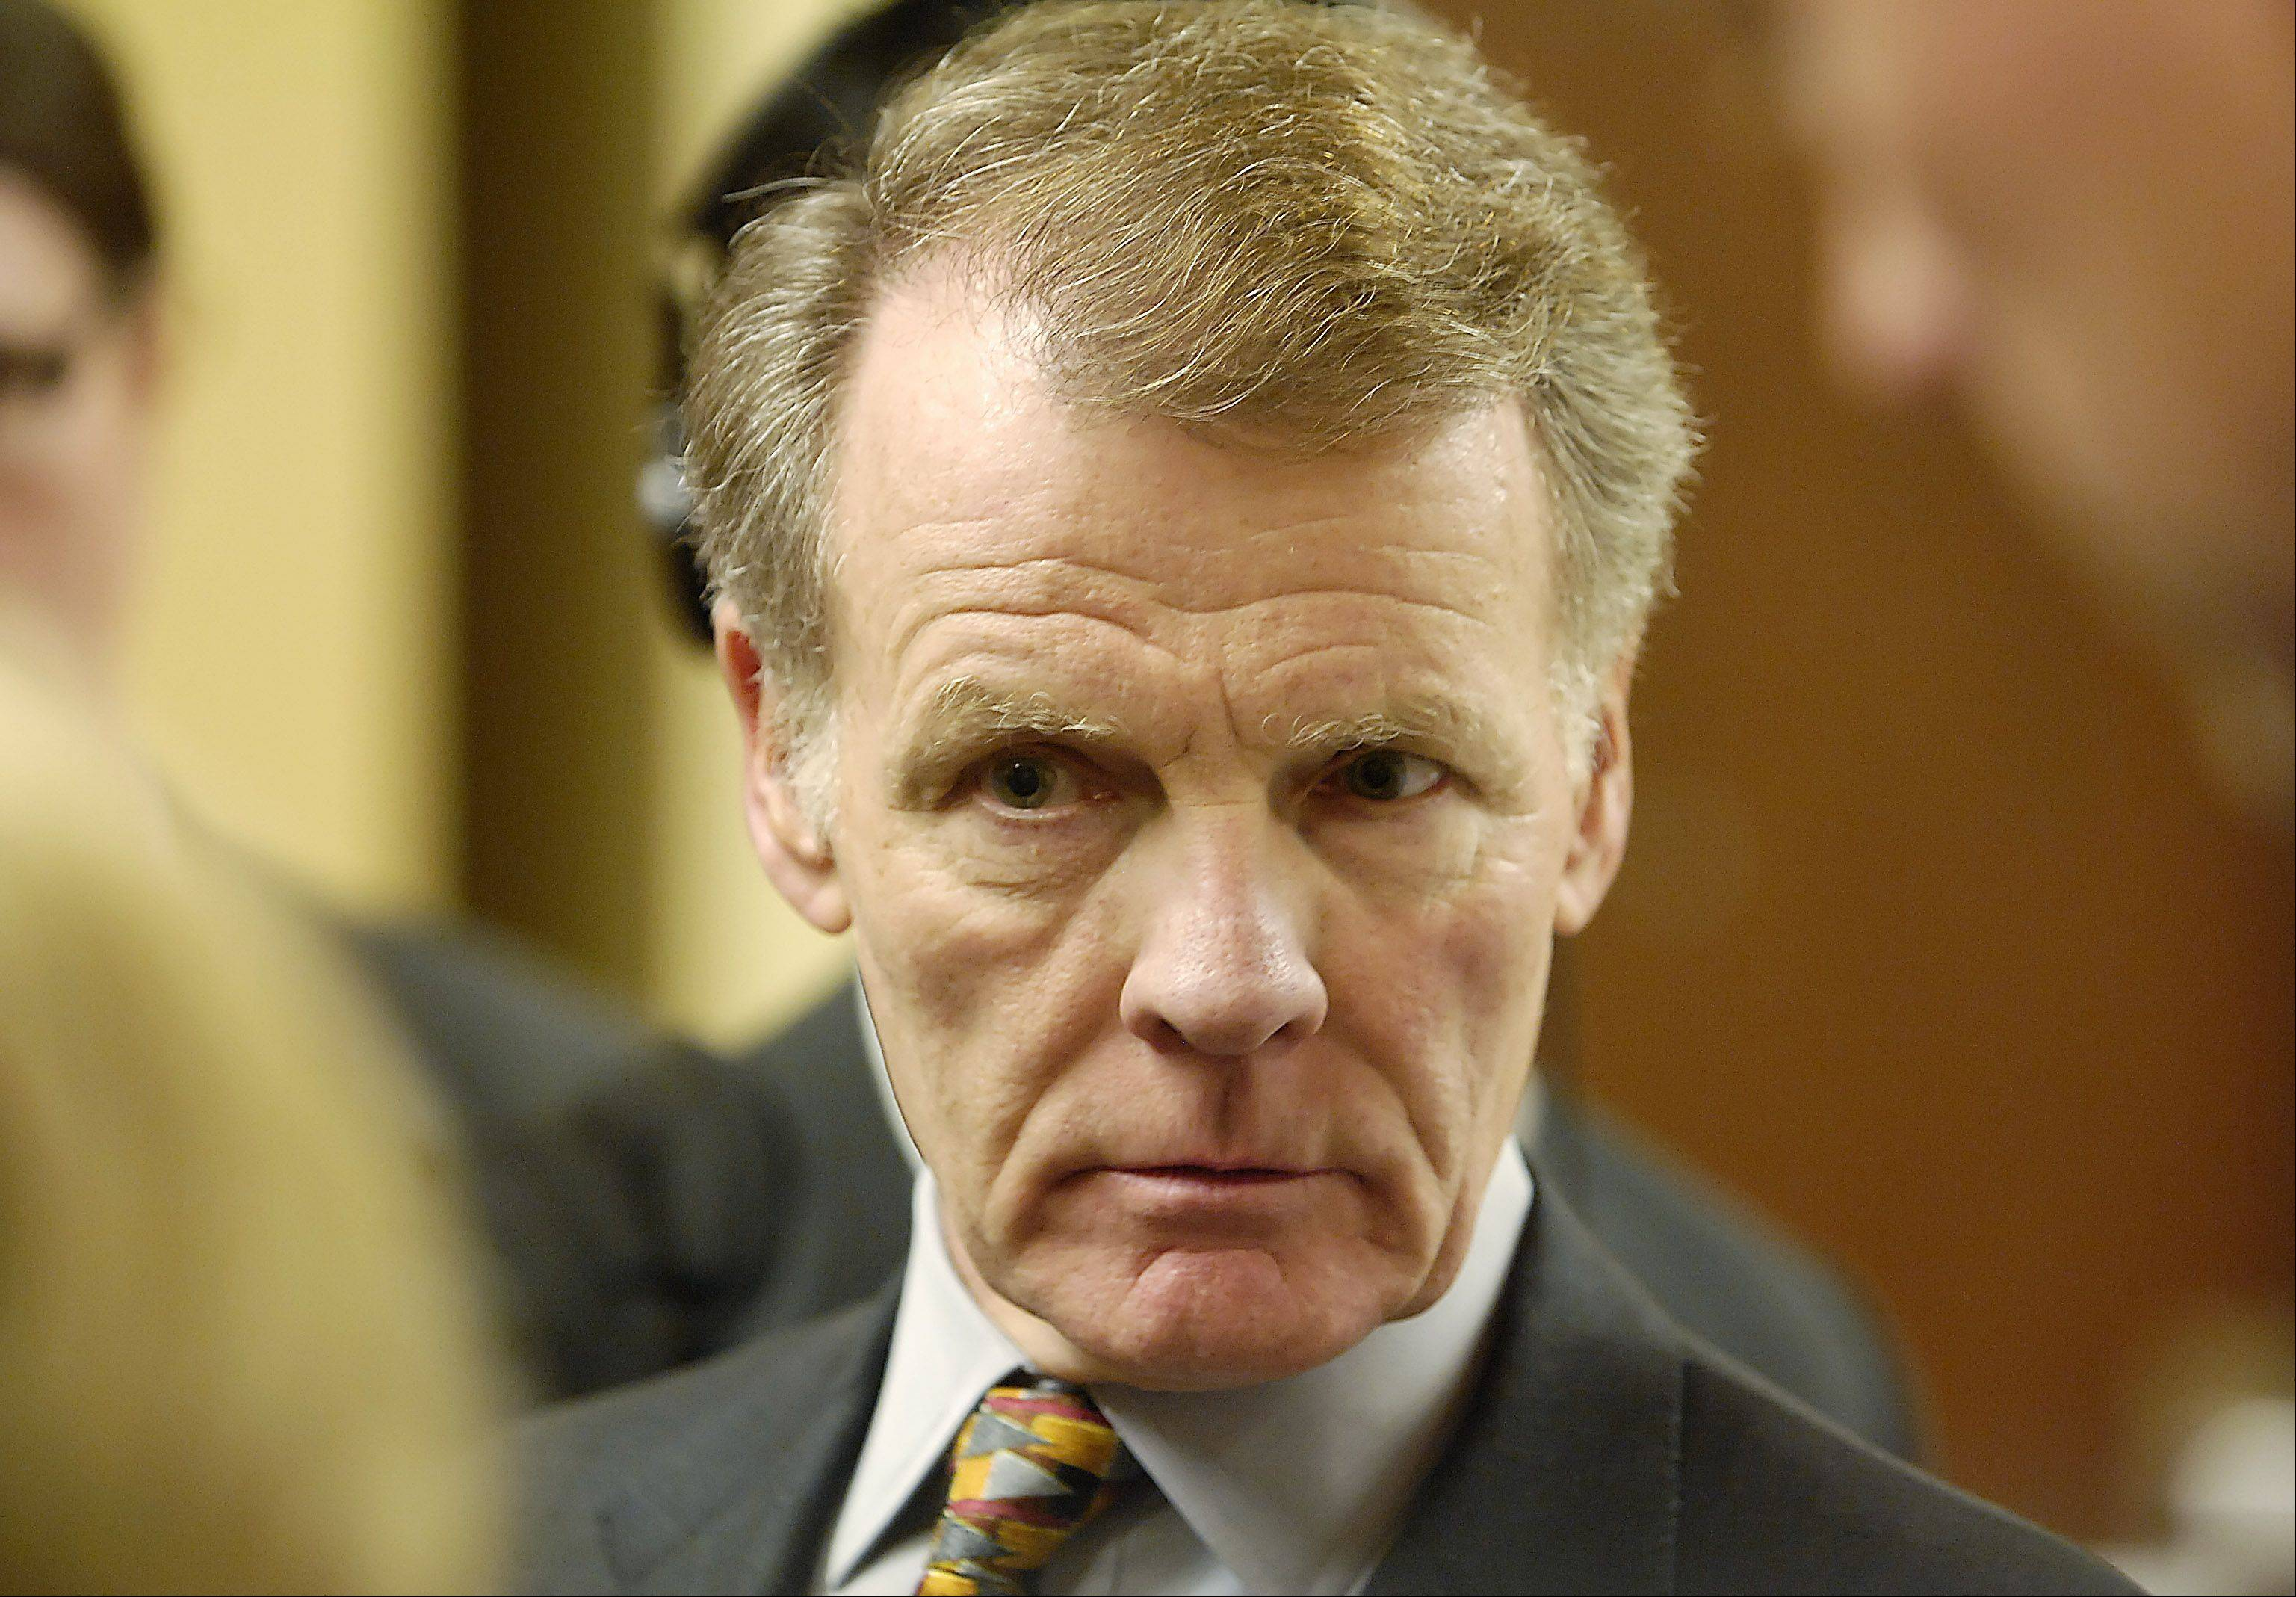 Illinois House Speaker Michael Madigan has sharply criticized corporate requests for tax breaks and says he's unlikely to support deals for companies that pay little in taxes.